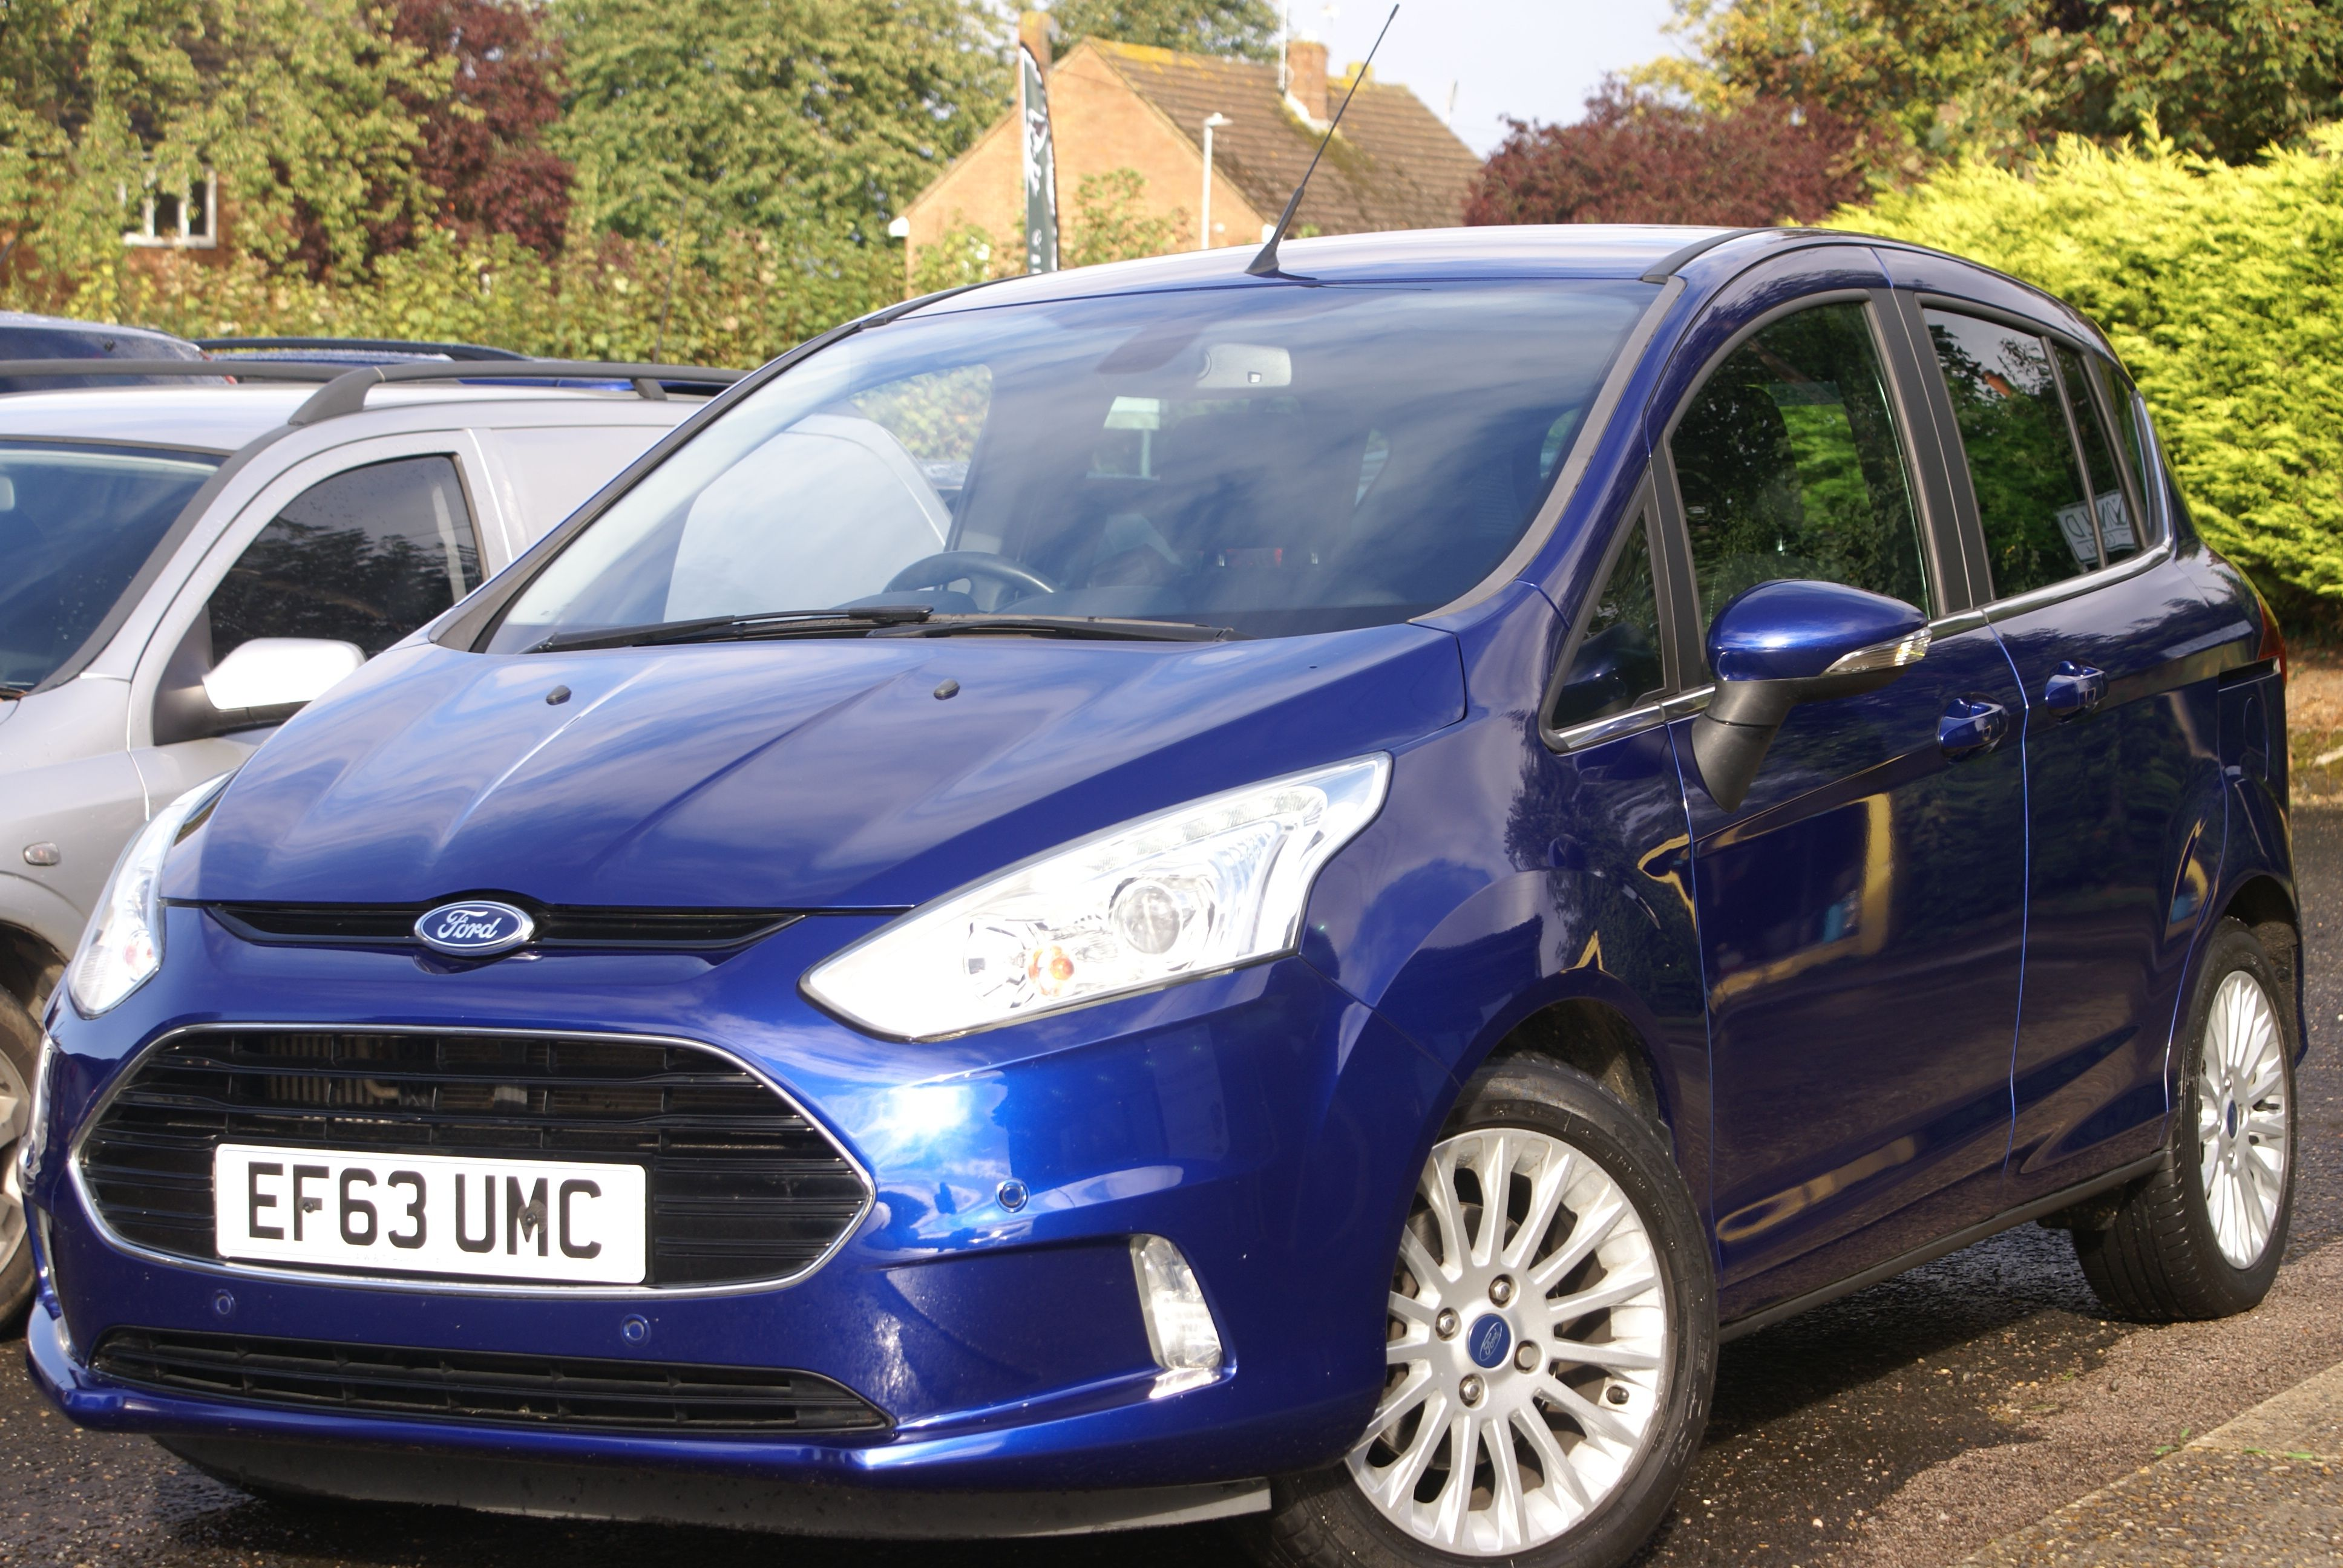 Ford S Baby Supermini That Is Based On The Fiesta Giving You Extra